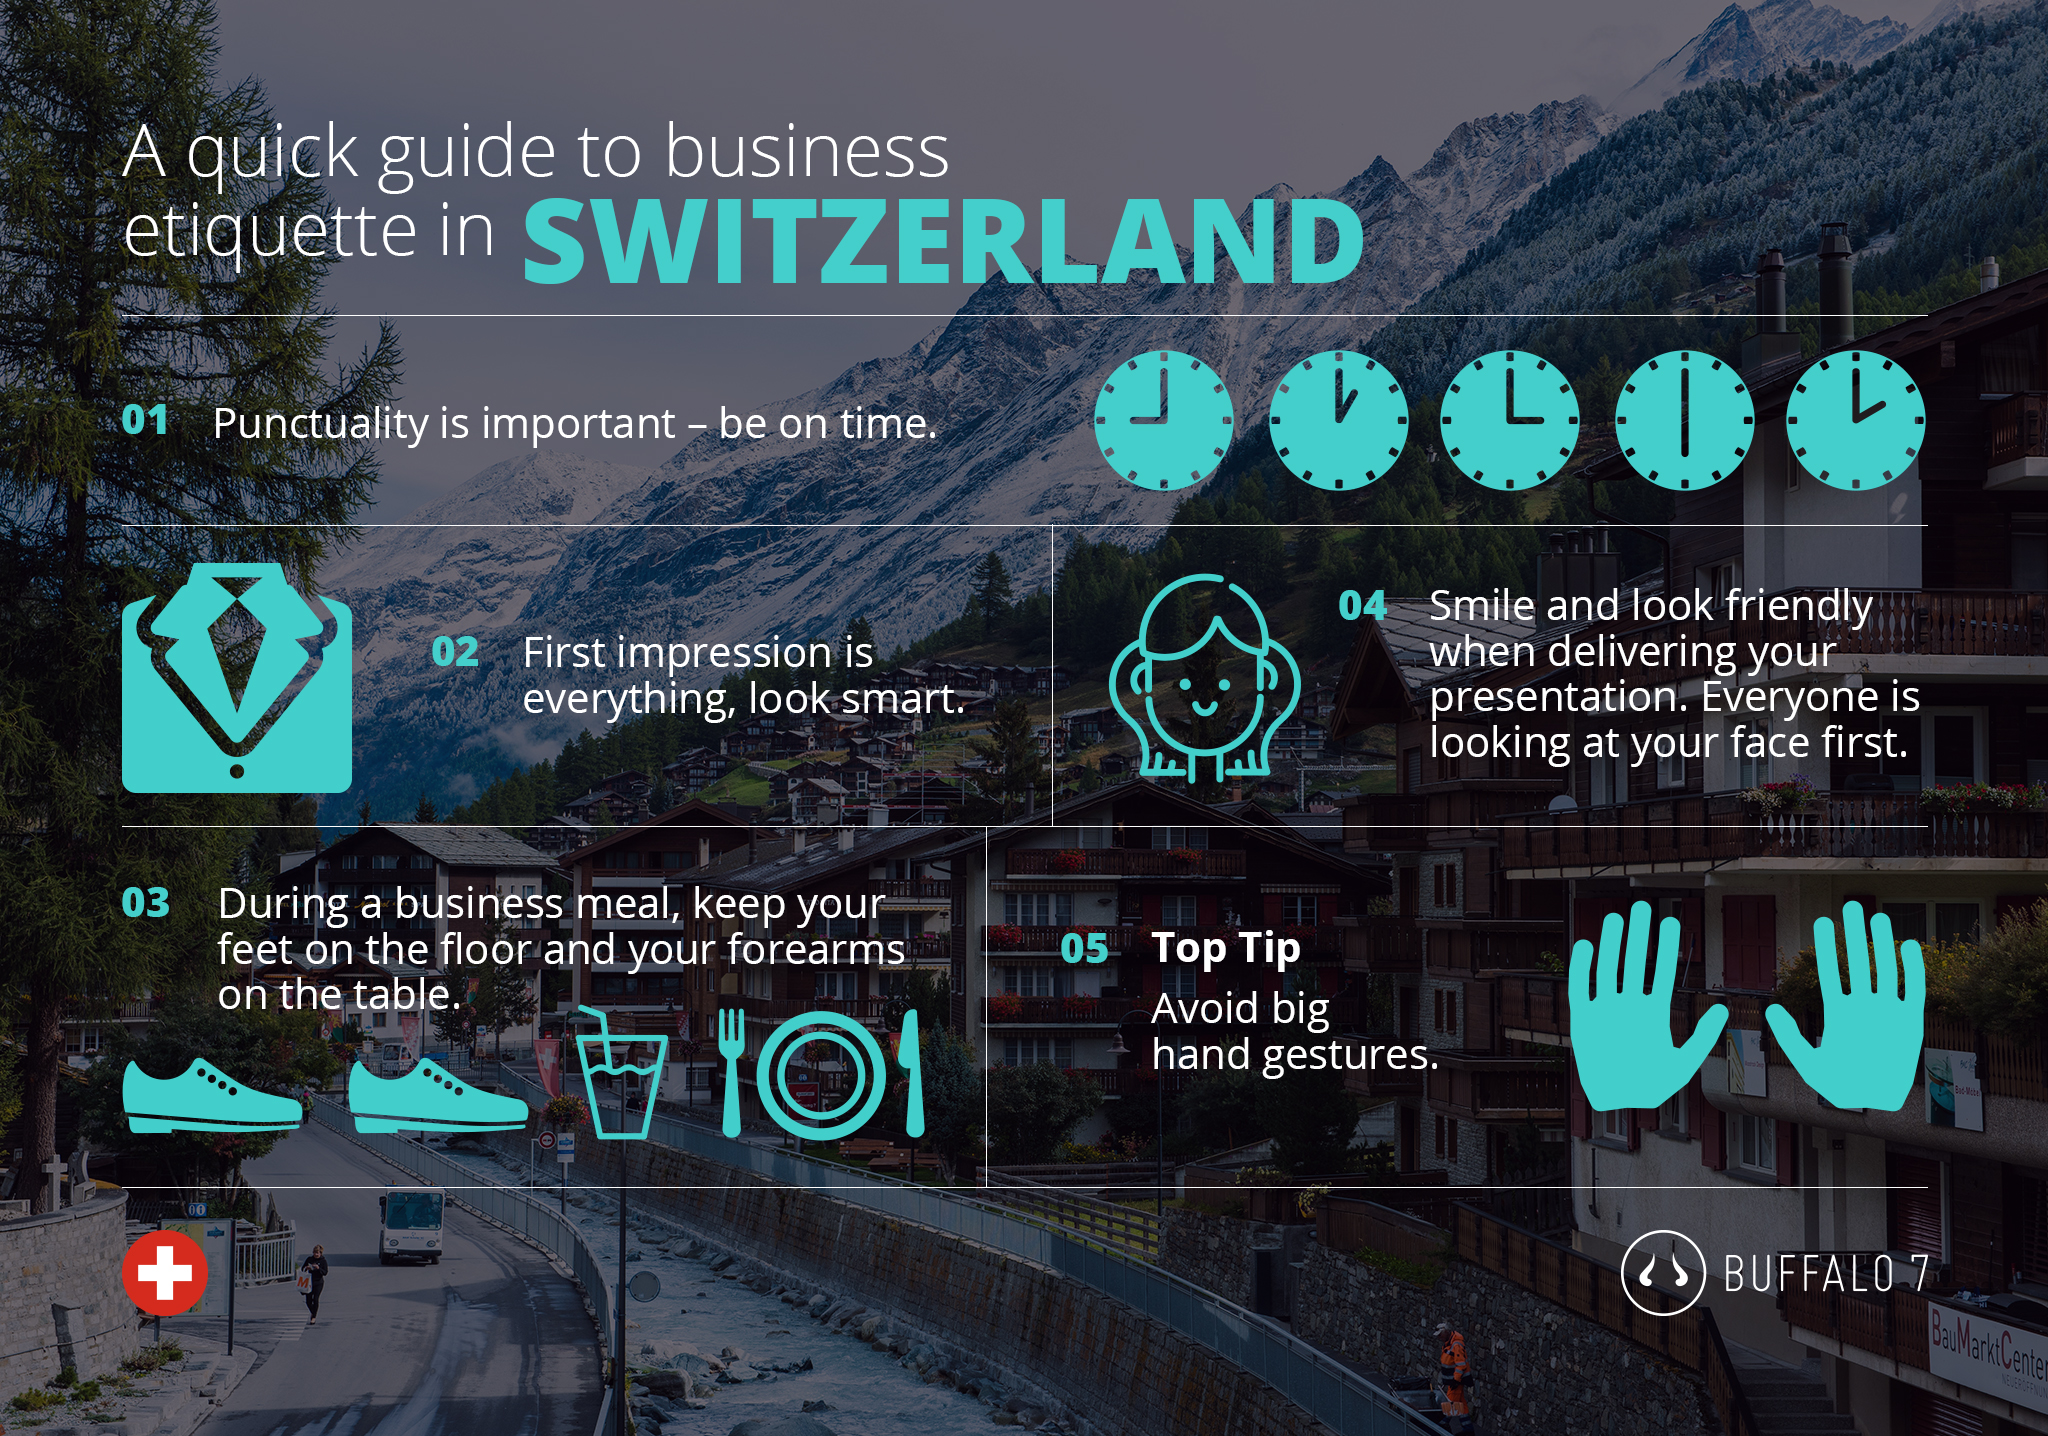 tips on swiss business etiquette